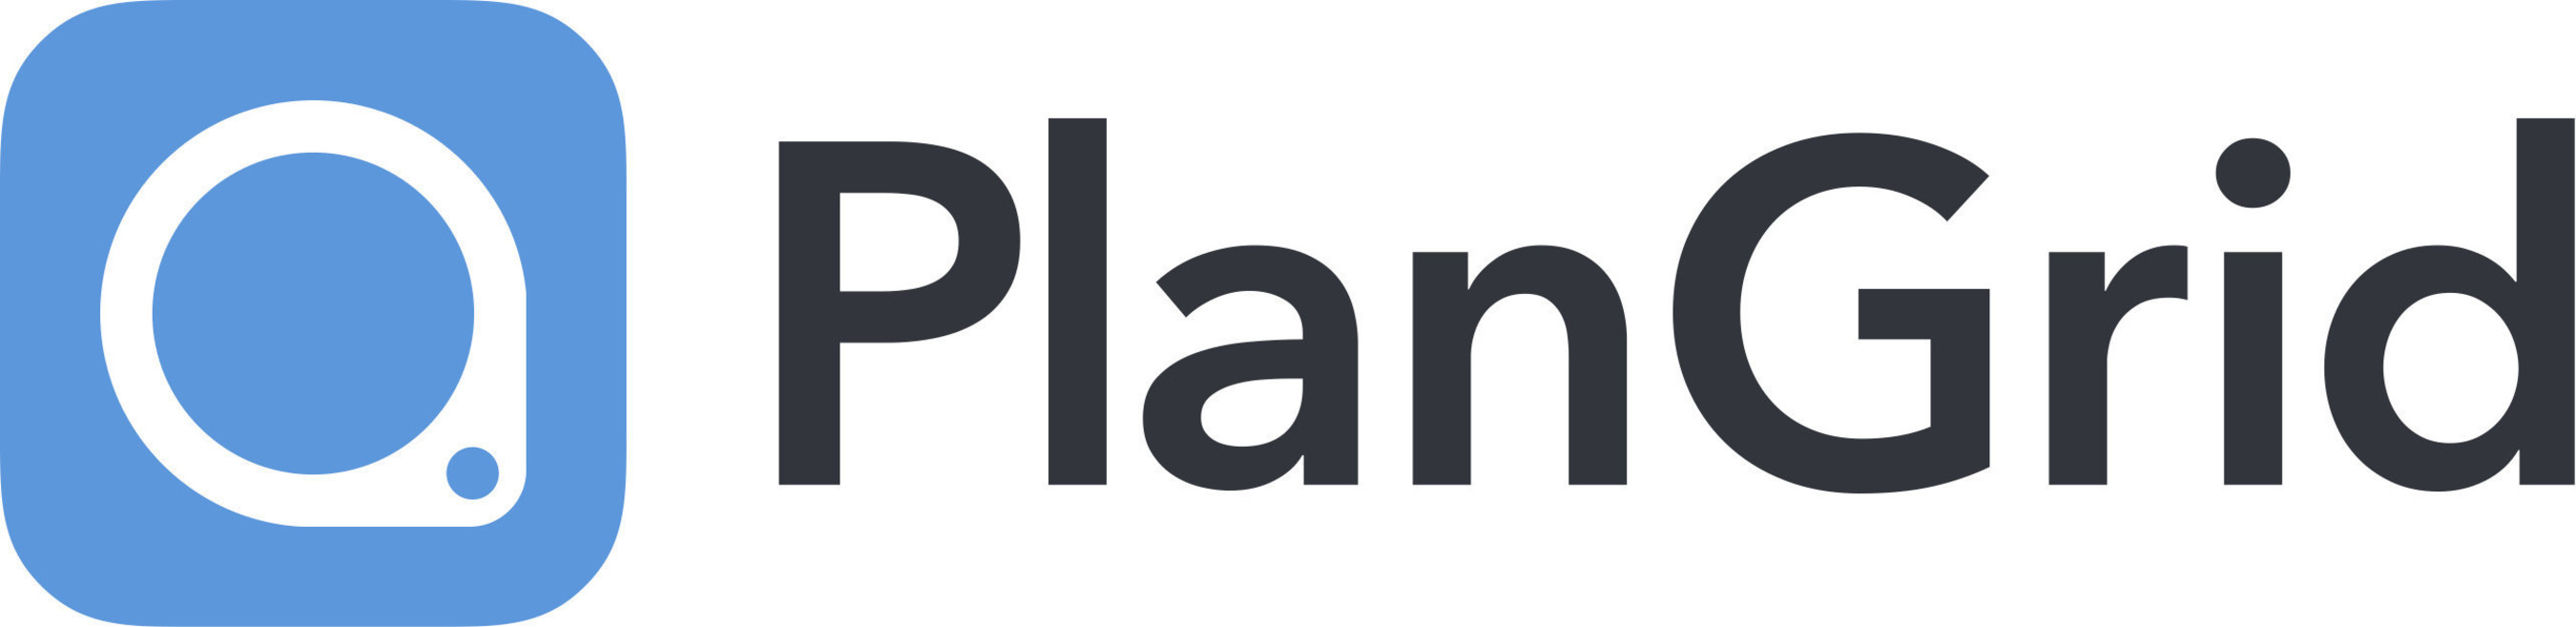 PlanGrid is construction software made for the field. Its platform is being used by major construction firms on more than 200,000 projects and is storing more than 20 million pages of digital blueprints.